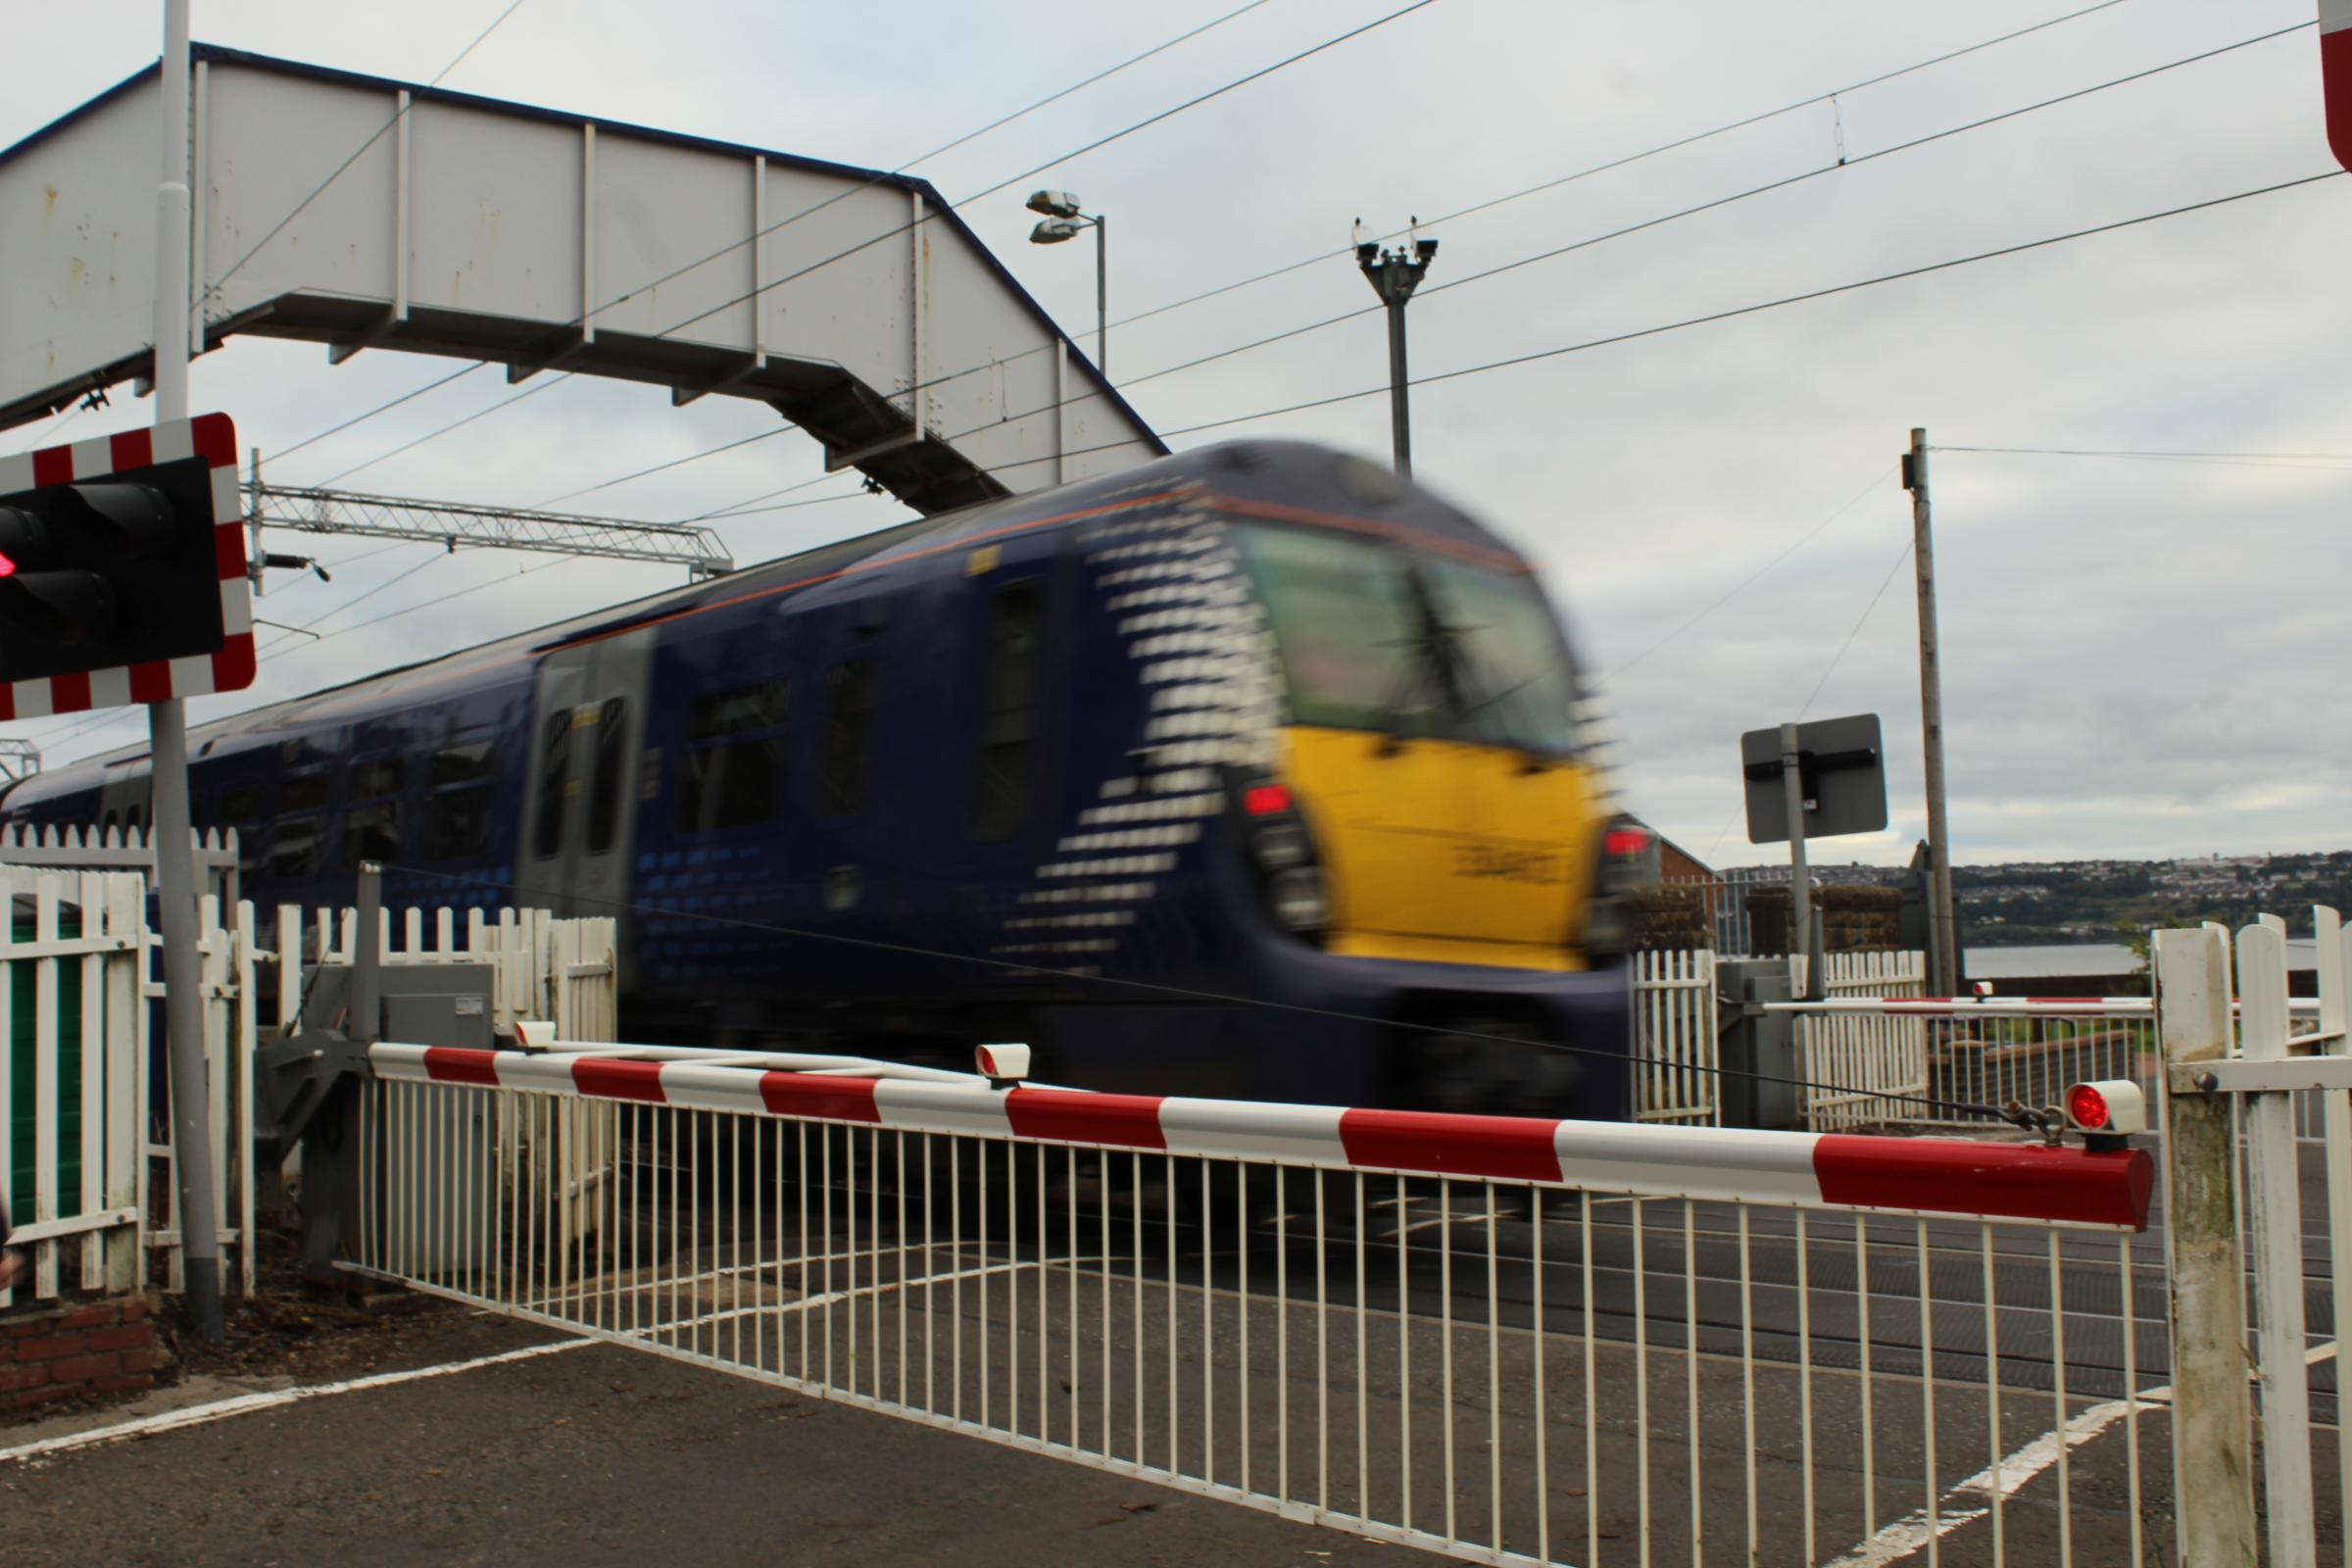 Trains to and from Helensburgh were badly disrupted on Tuesday